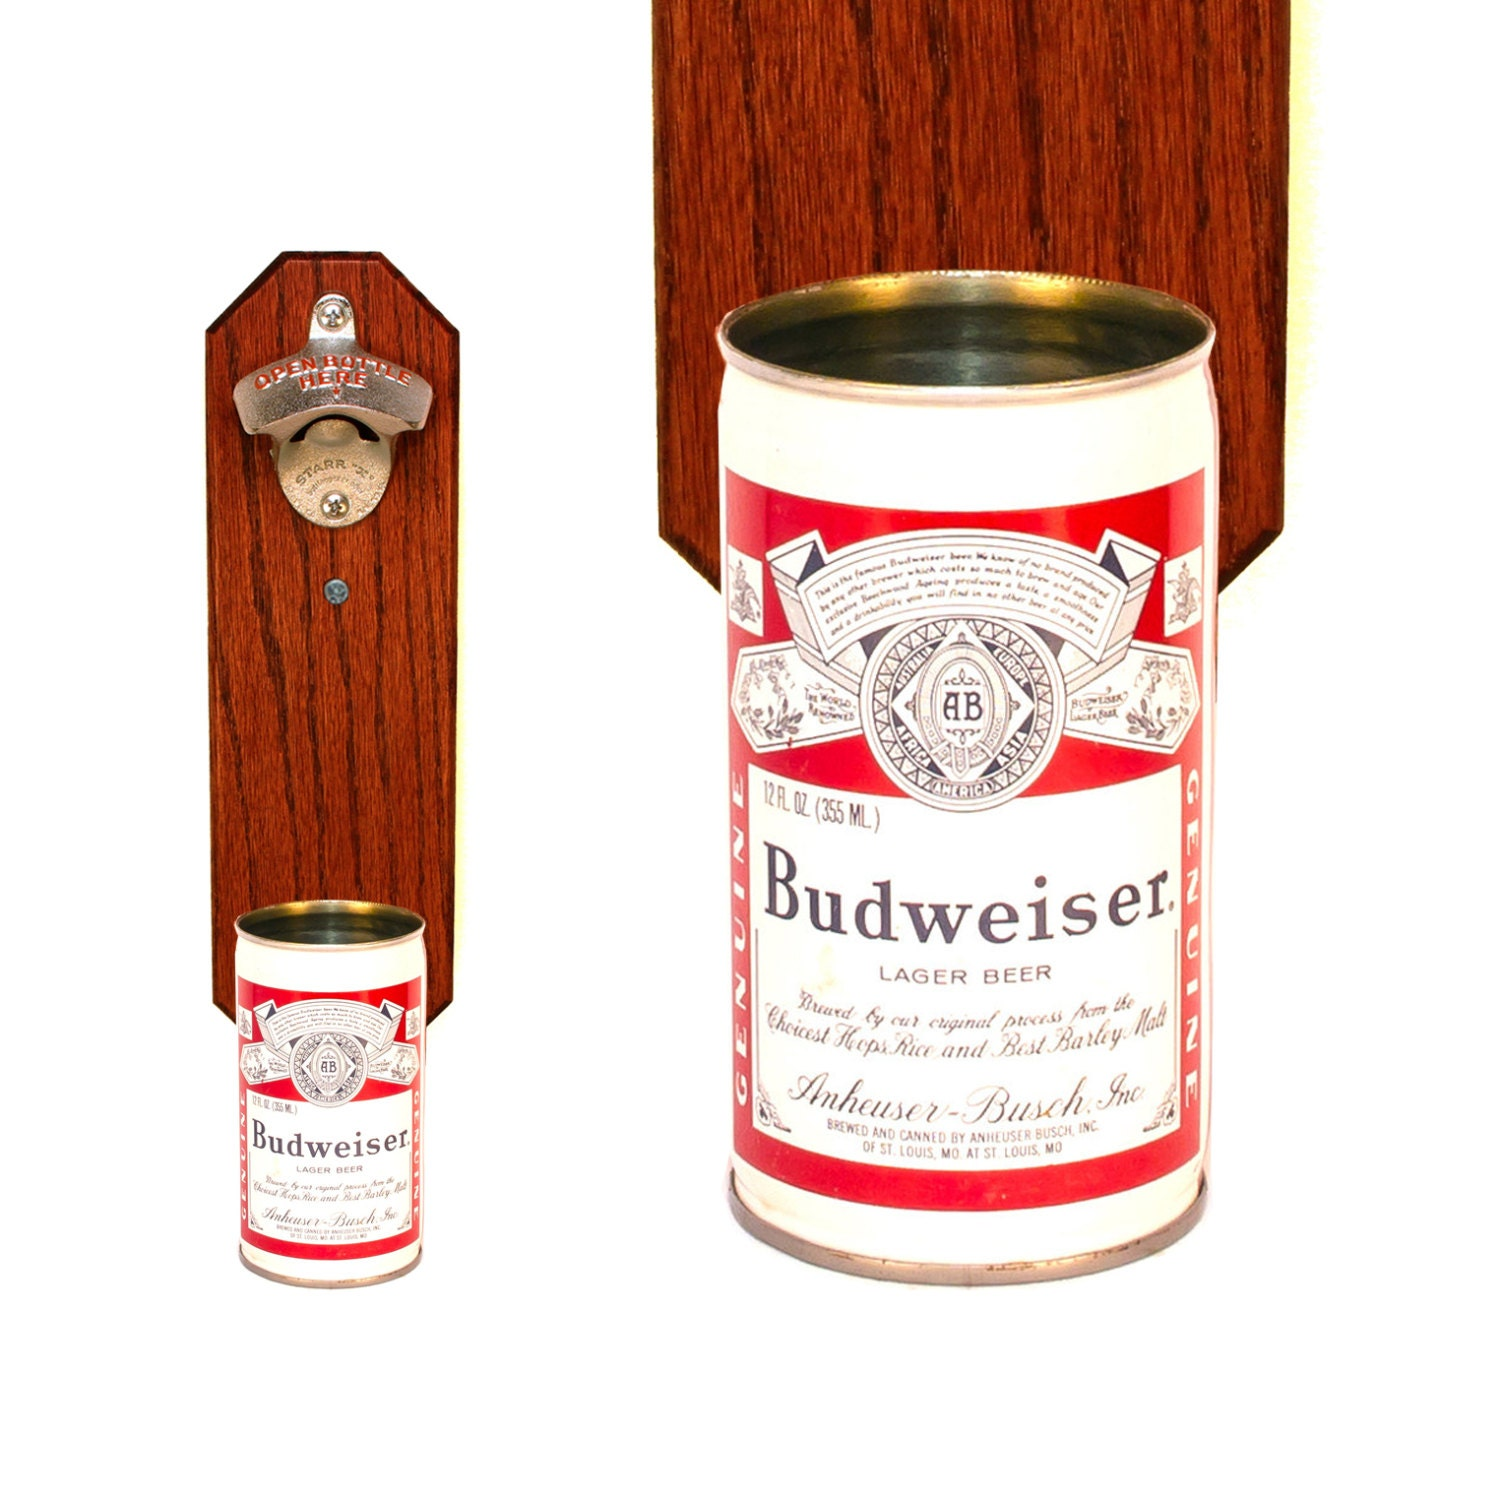 Wall Mounted Bottle Opener With Vintage Budweiser Beer By